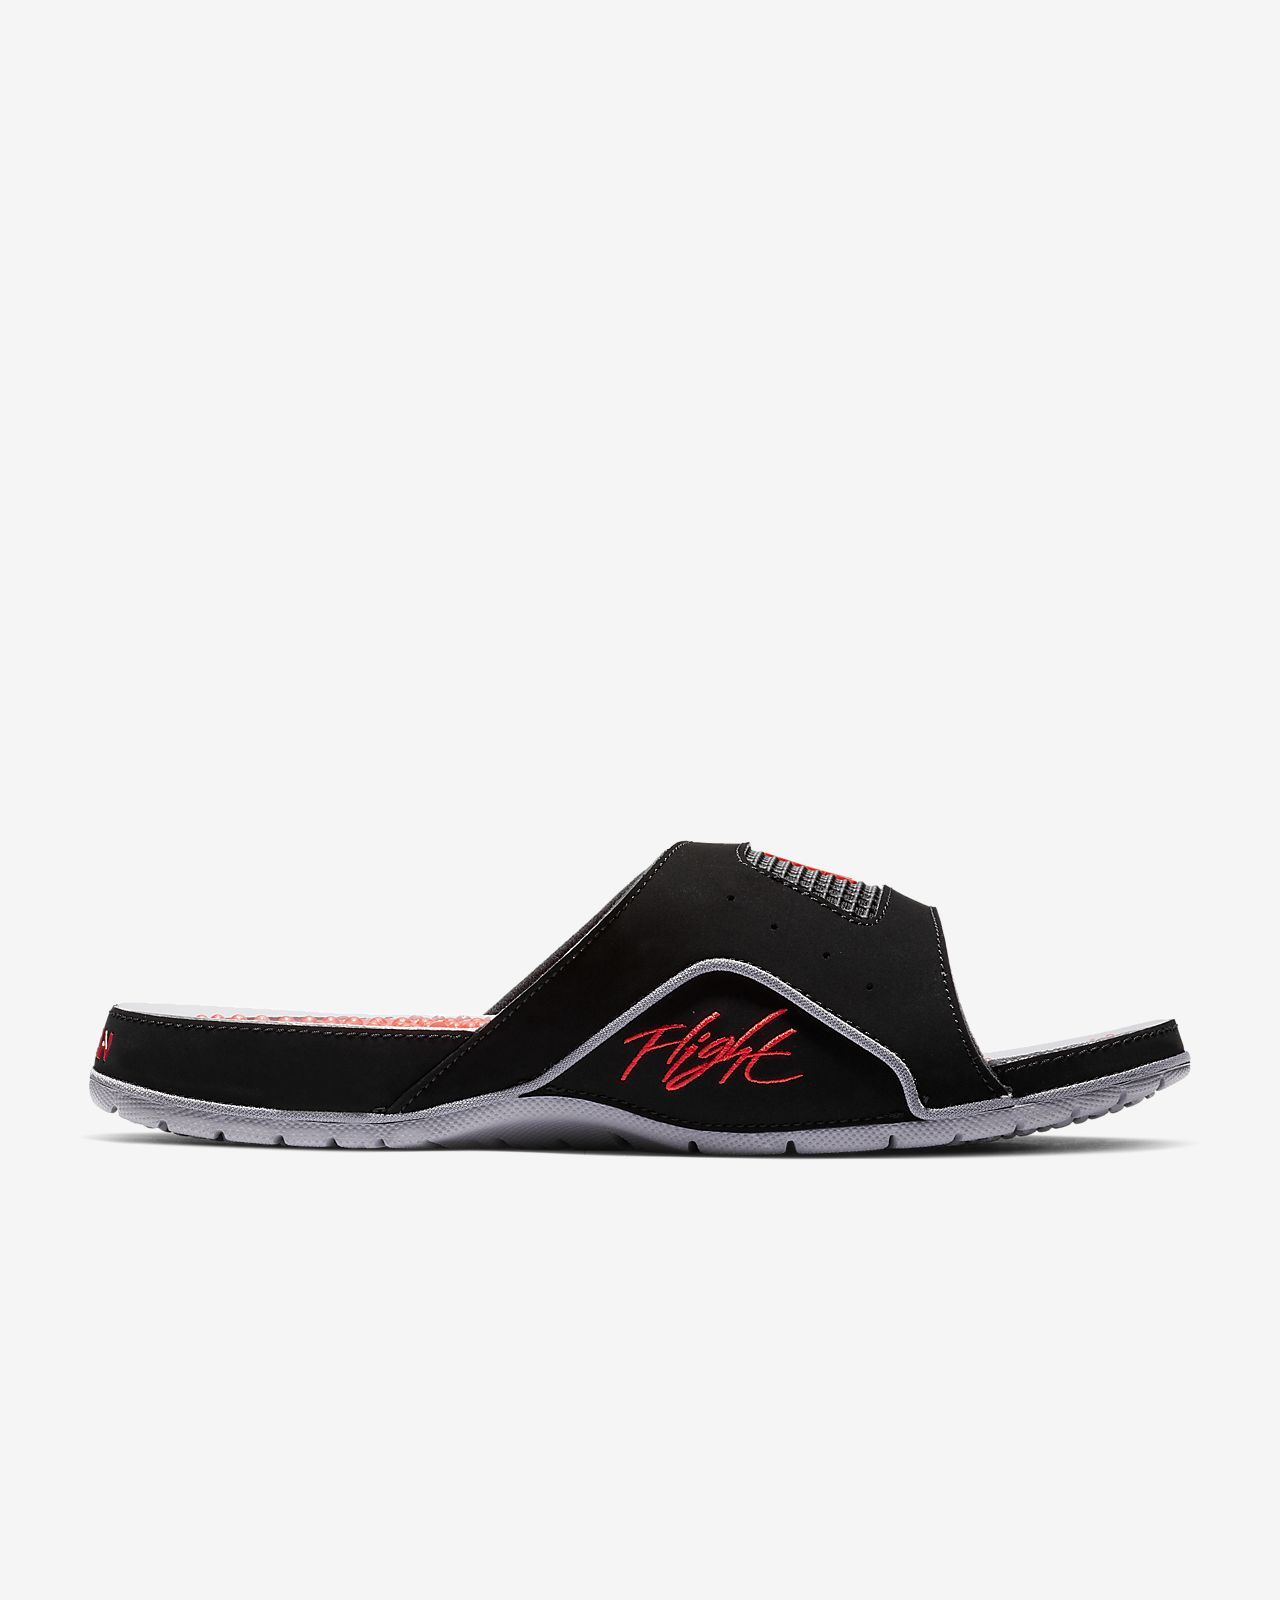 cd0accfd29f5 Jordan Hydro 4 Retro Men s Slide. Nike.com